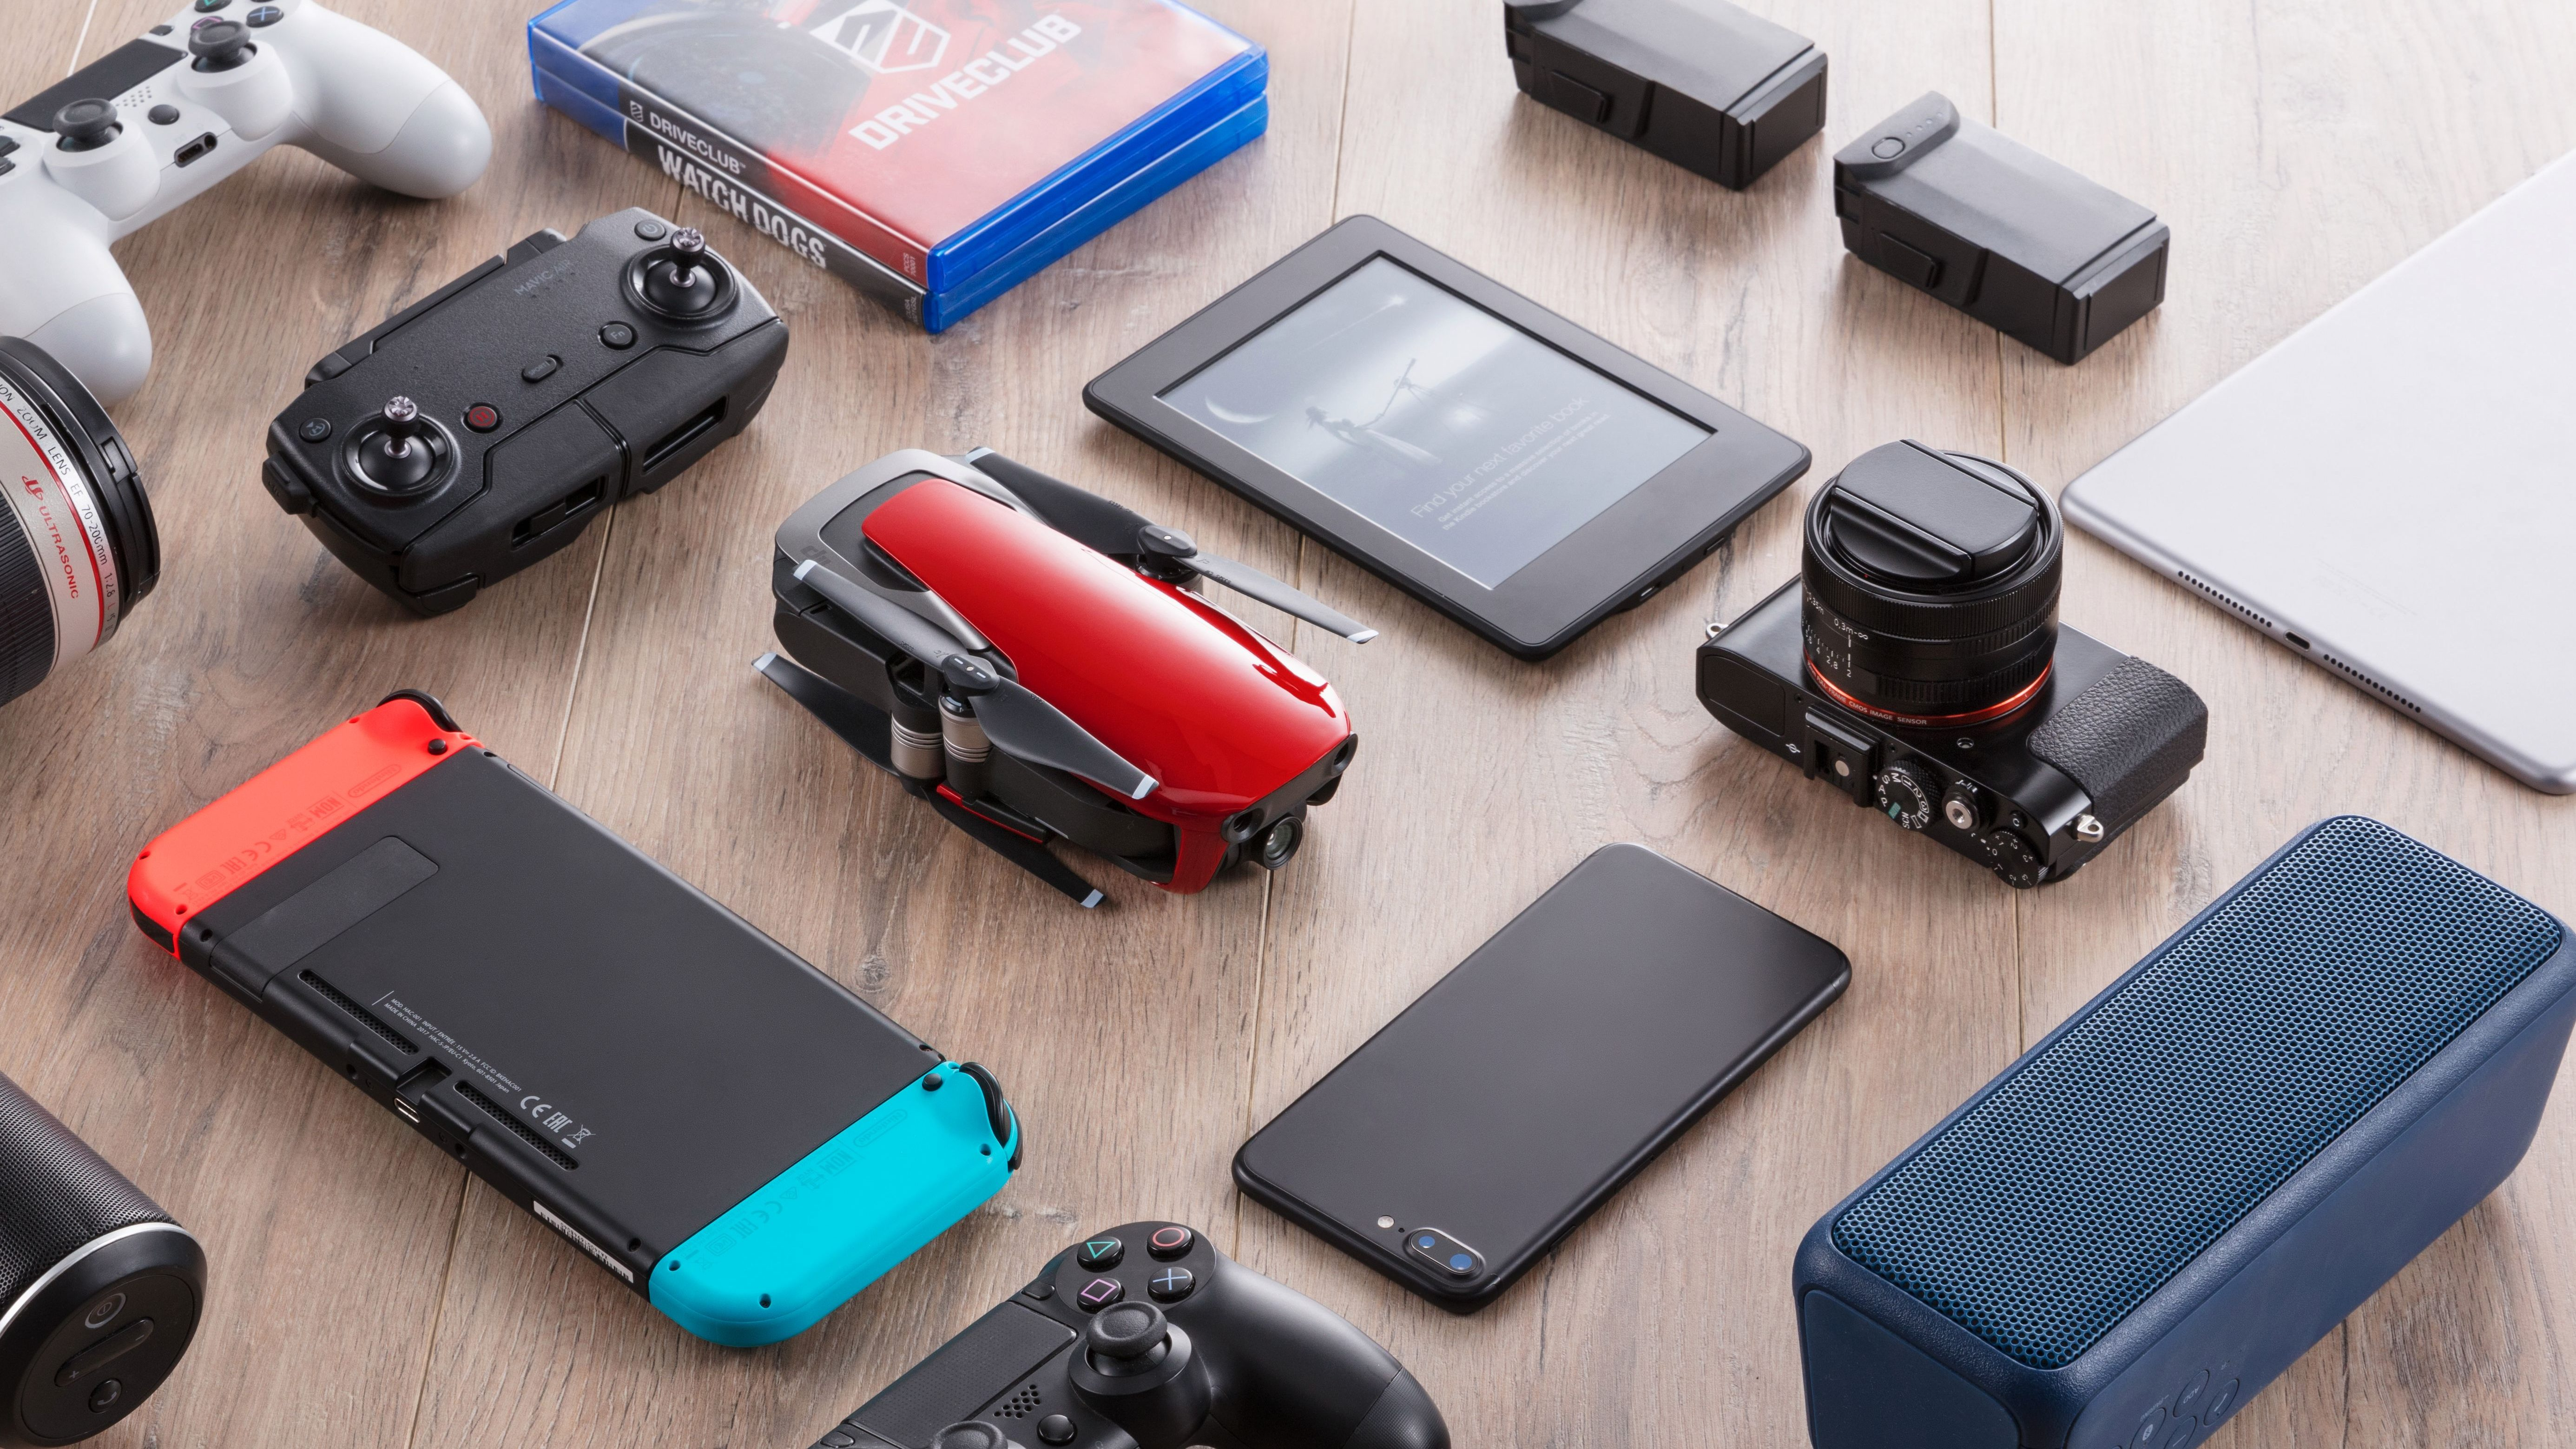 The best tech gadgets for Black Friday and holiday shopping — Quartz